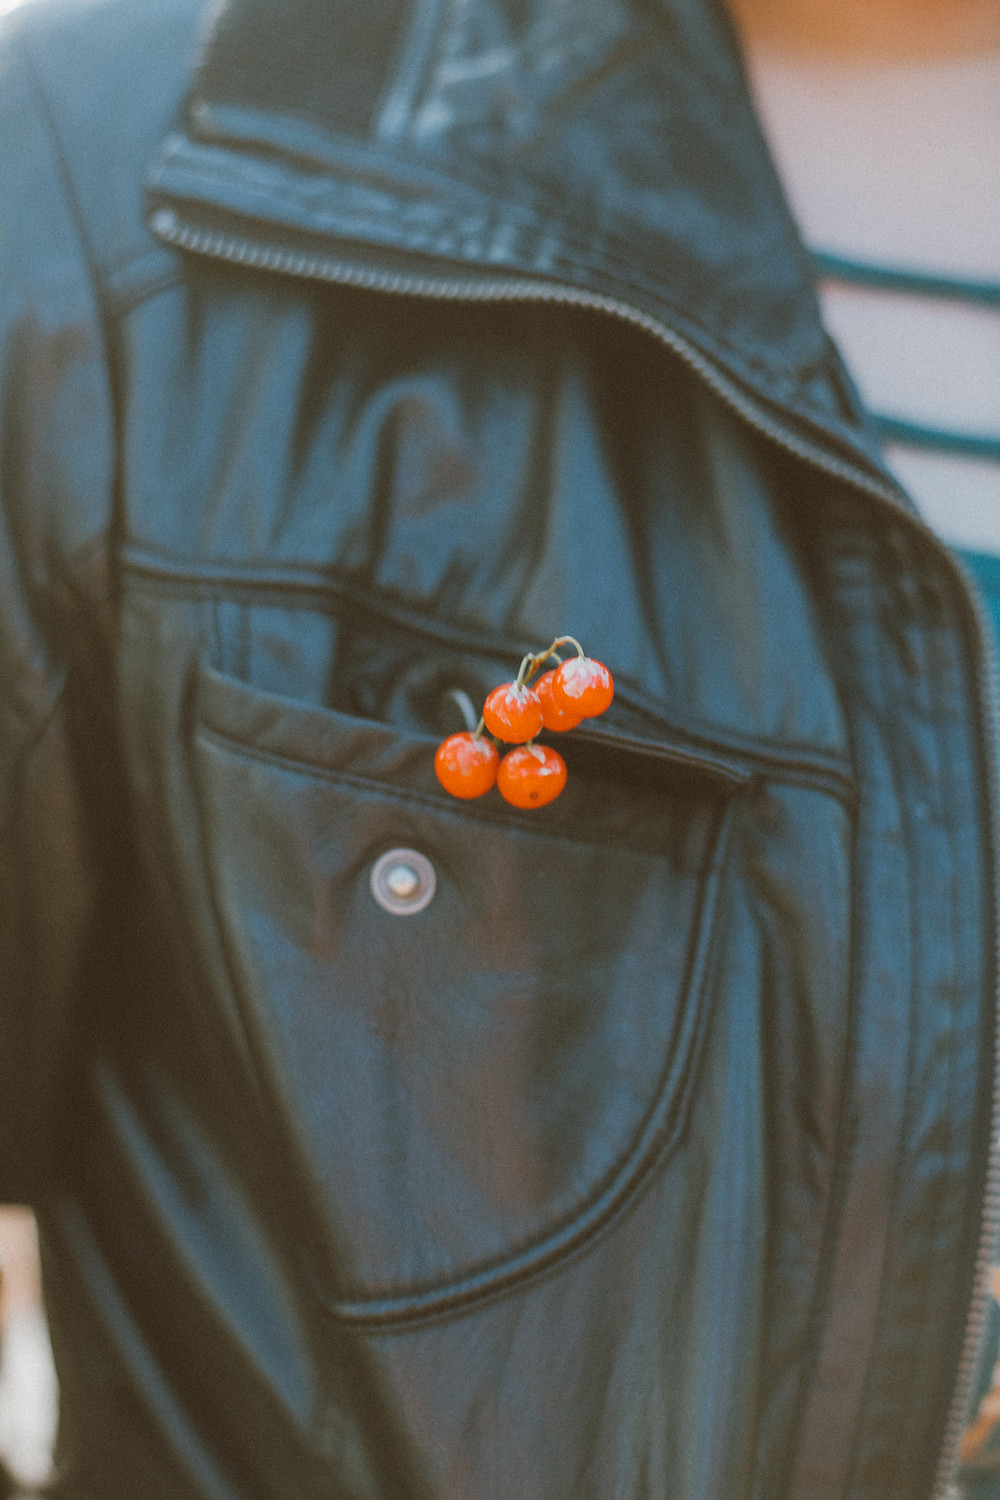 Fall lifestyle photography by Anna Gutermuth.